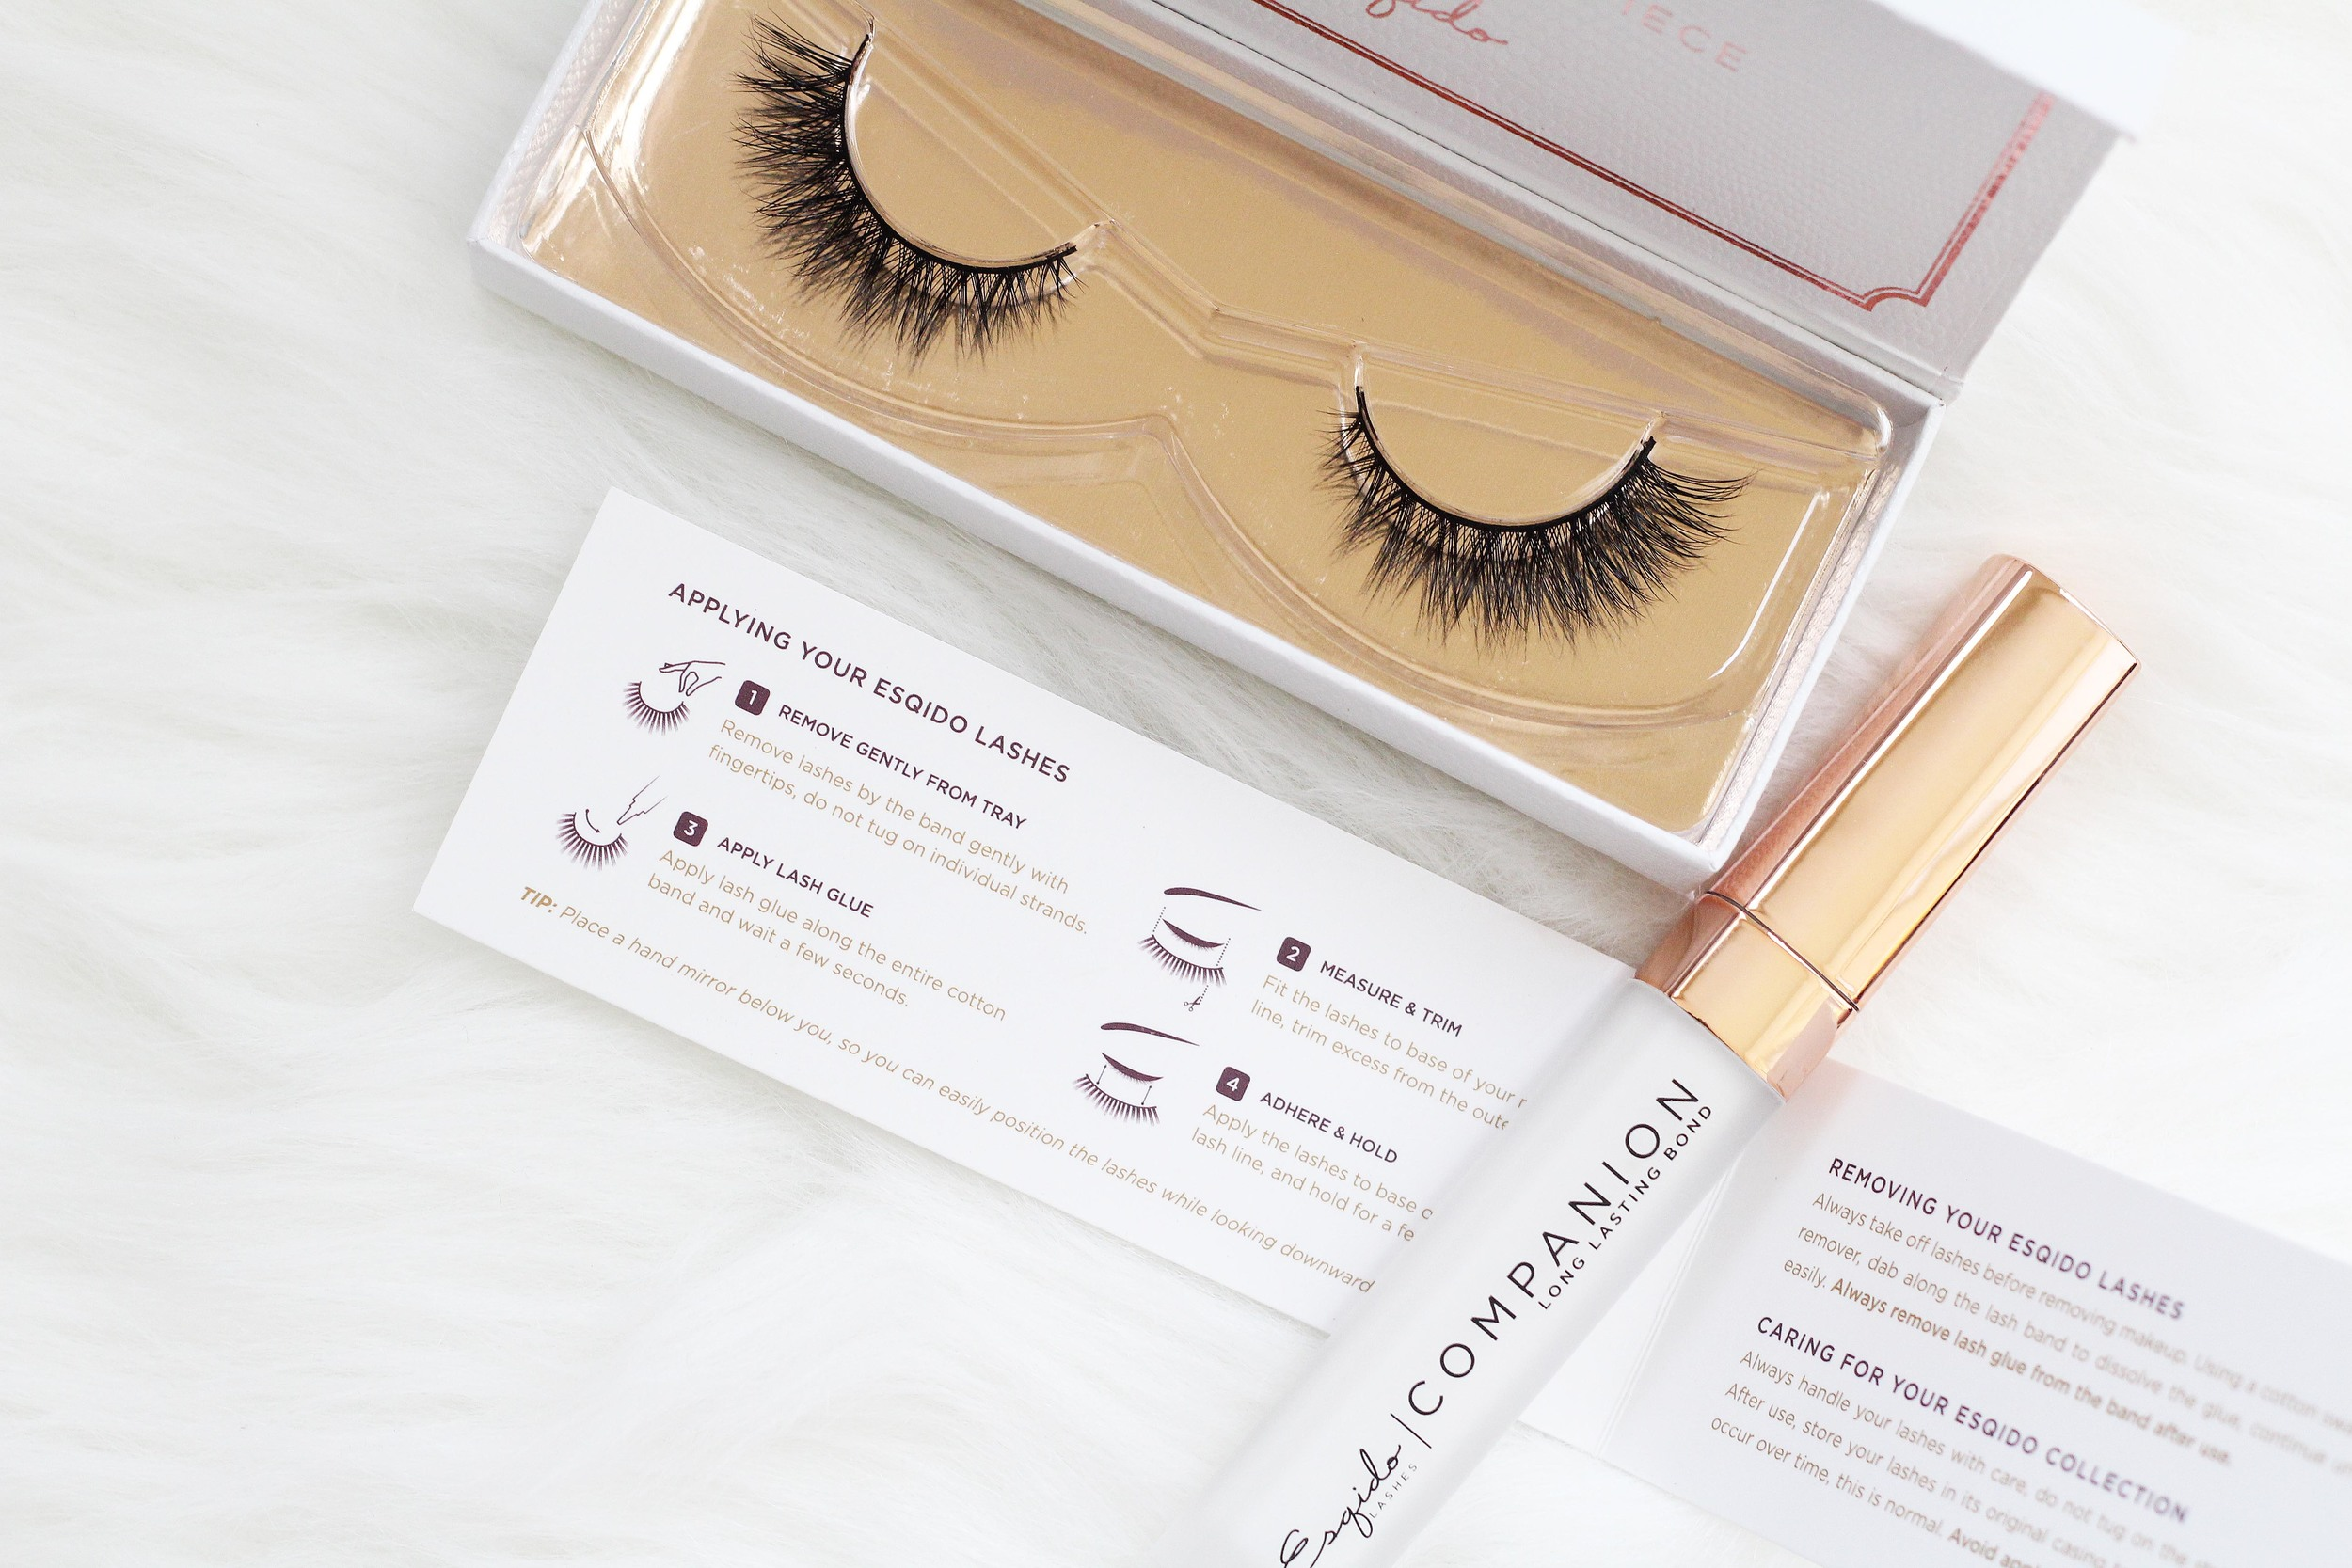 Photographed: Lash Named Desire with Companion Long Lasting Bond